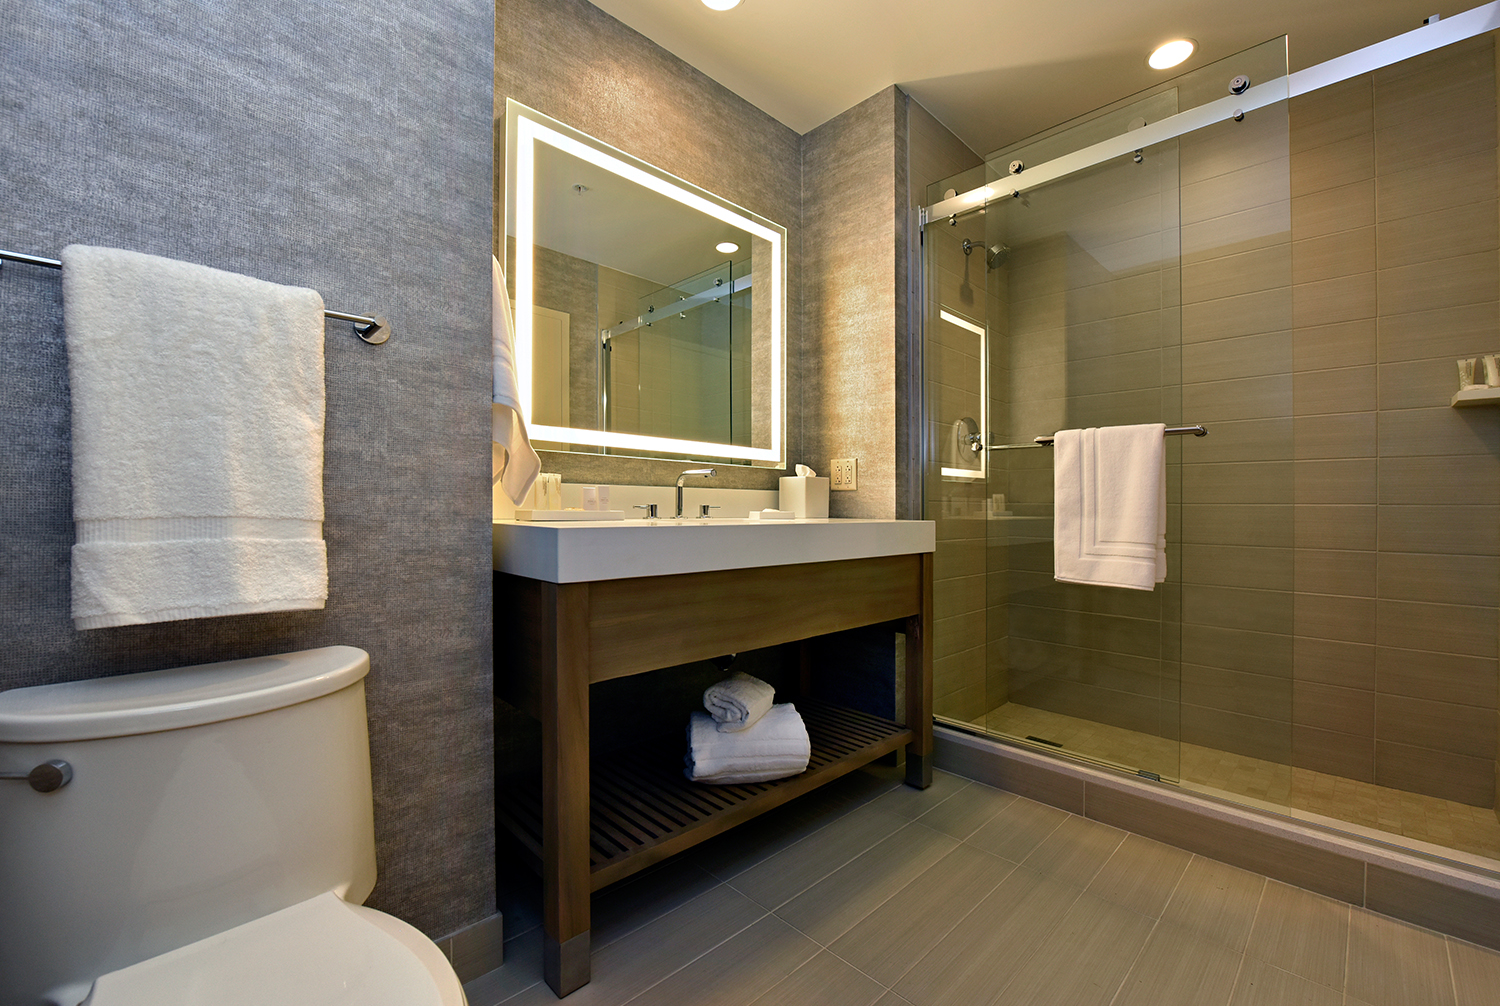 Guestroom Bathroom with glass-enclosed shower and lighted vanity.